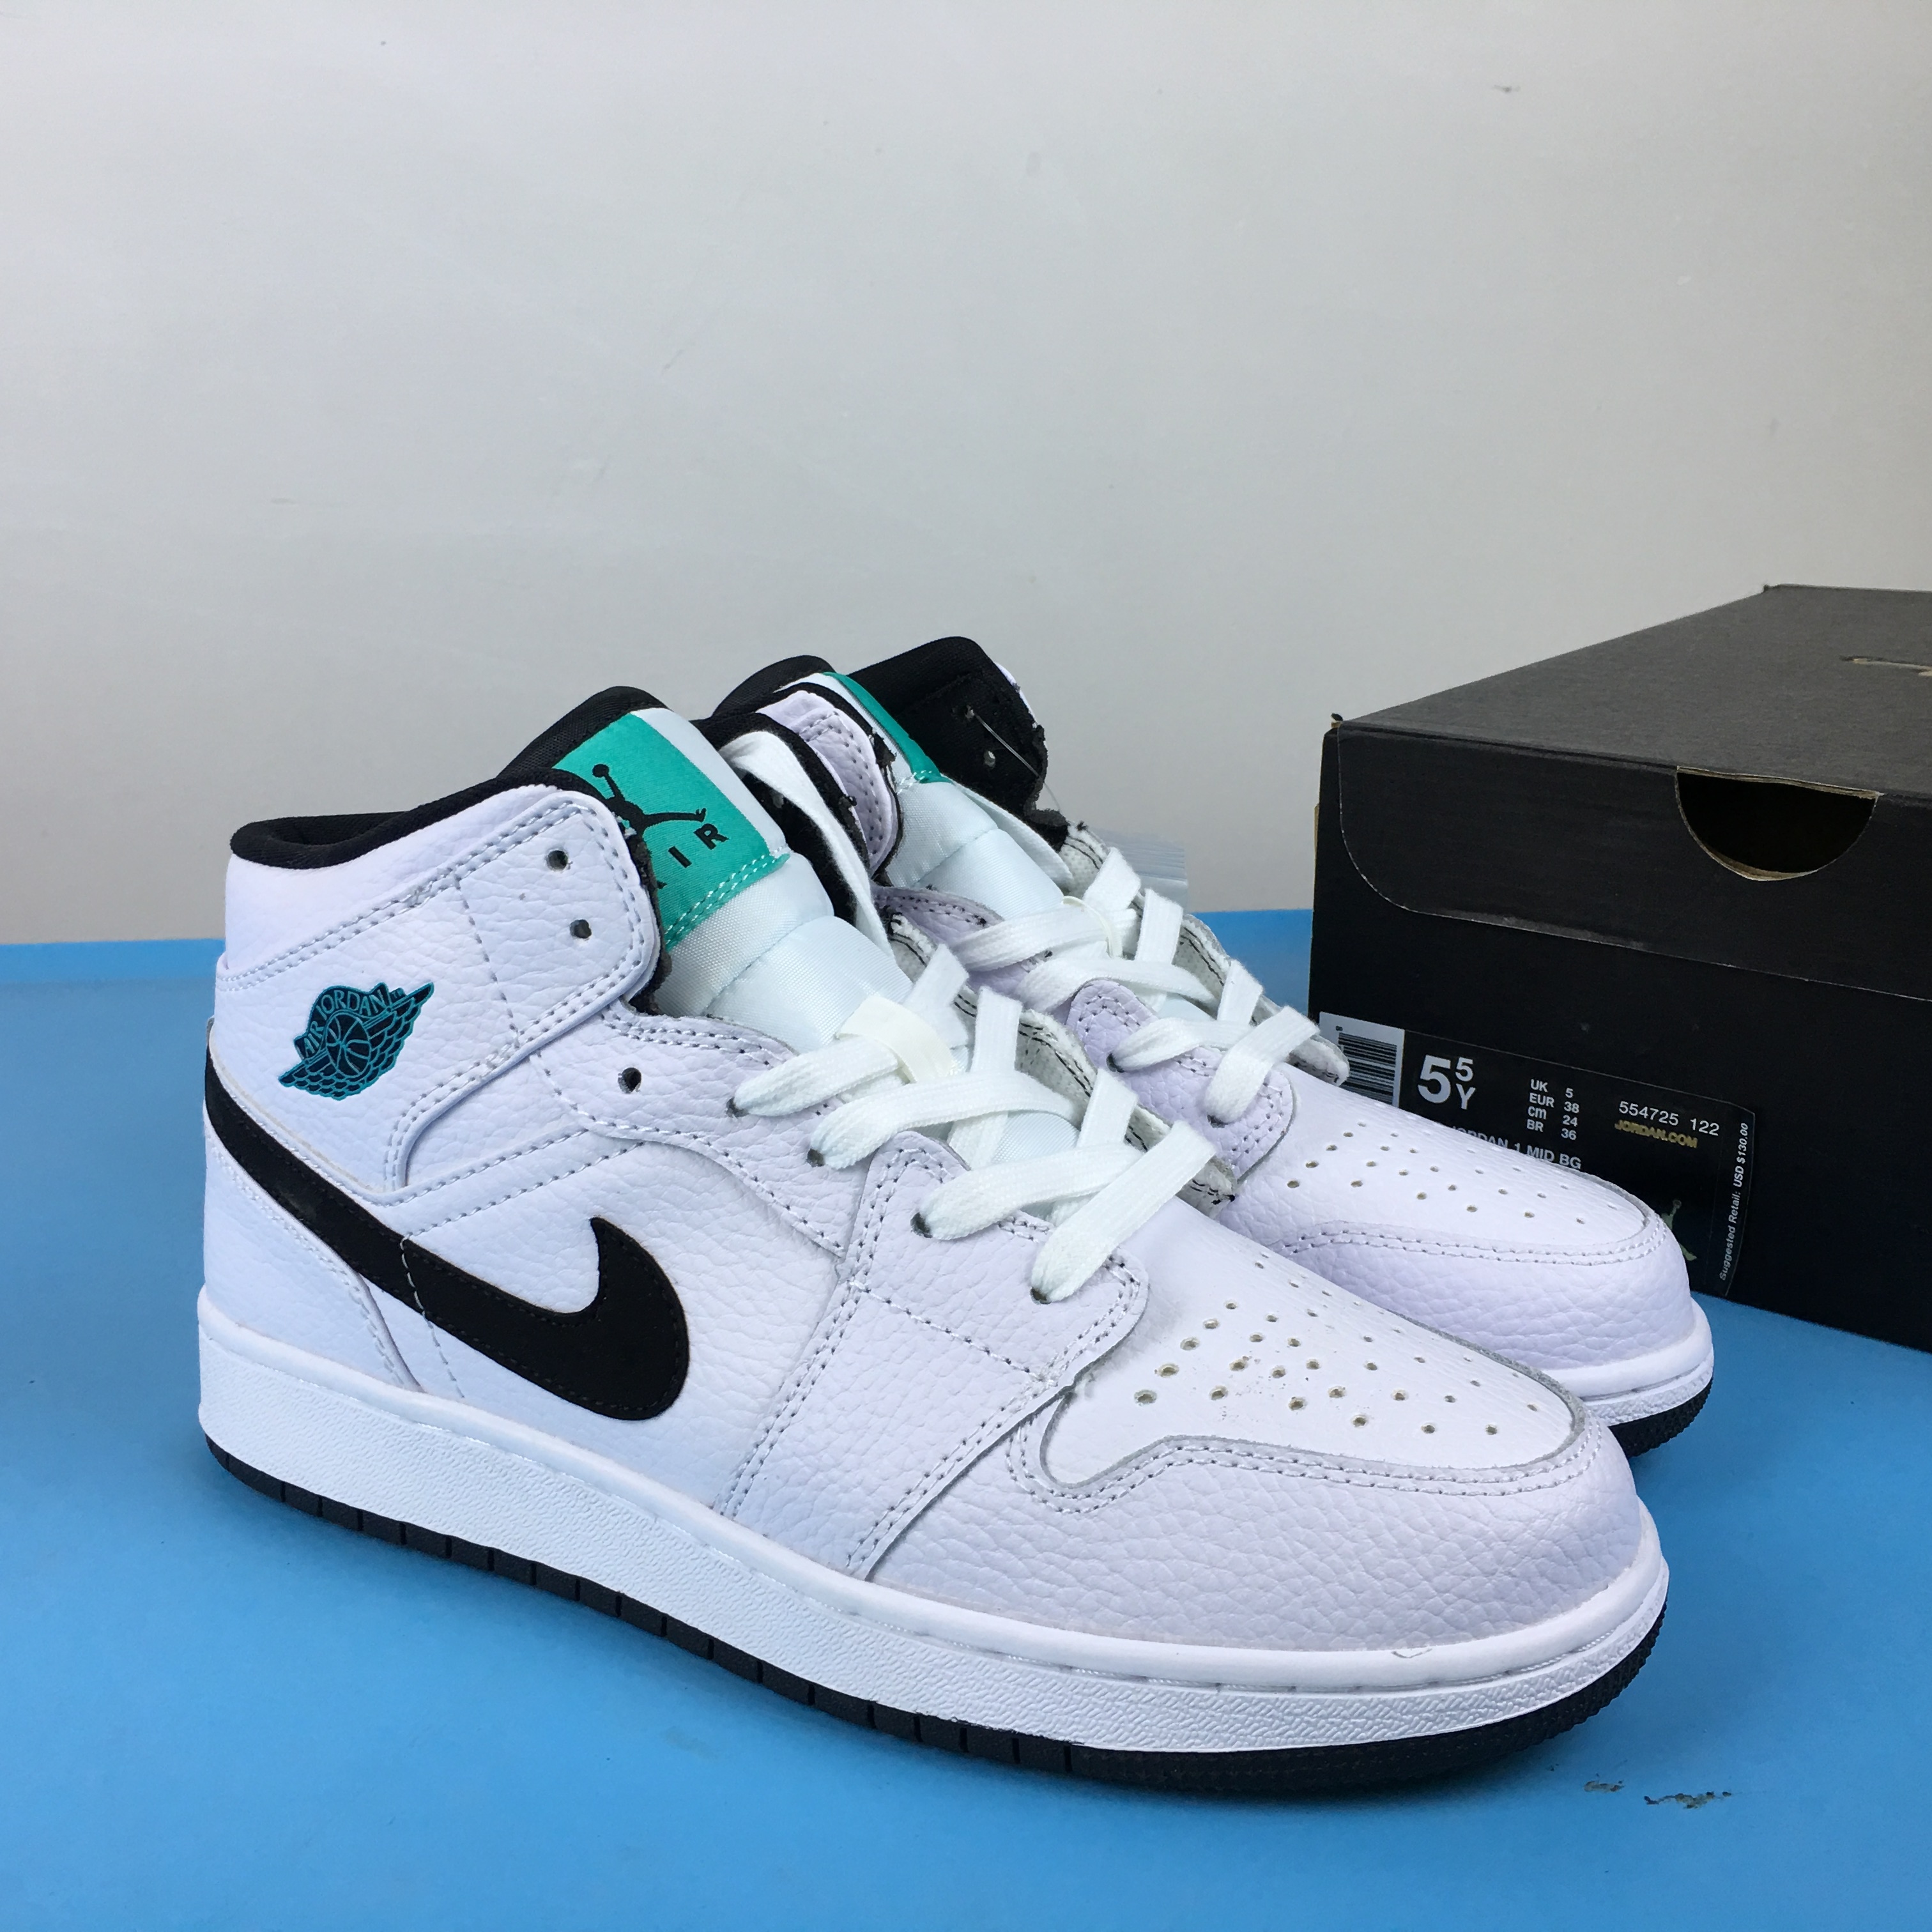 Air Jordan 1 Mid GS Peacock White Shoes